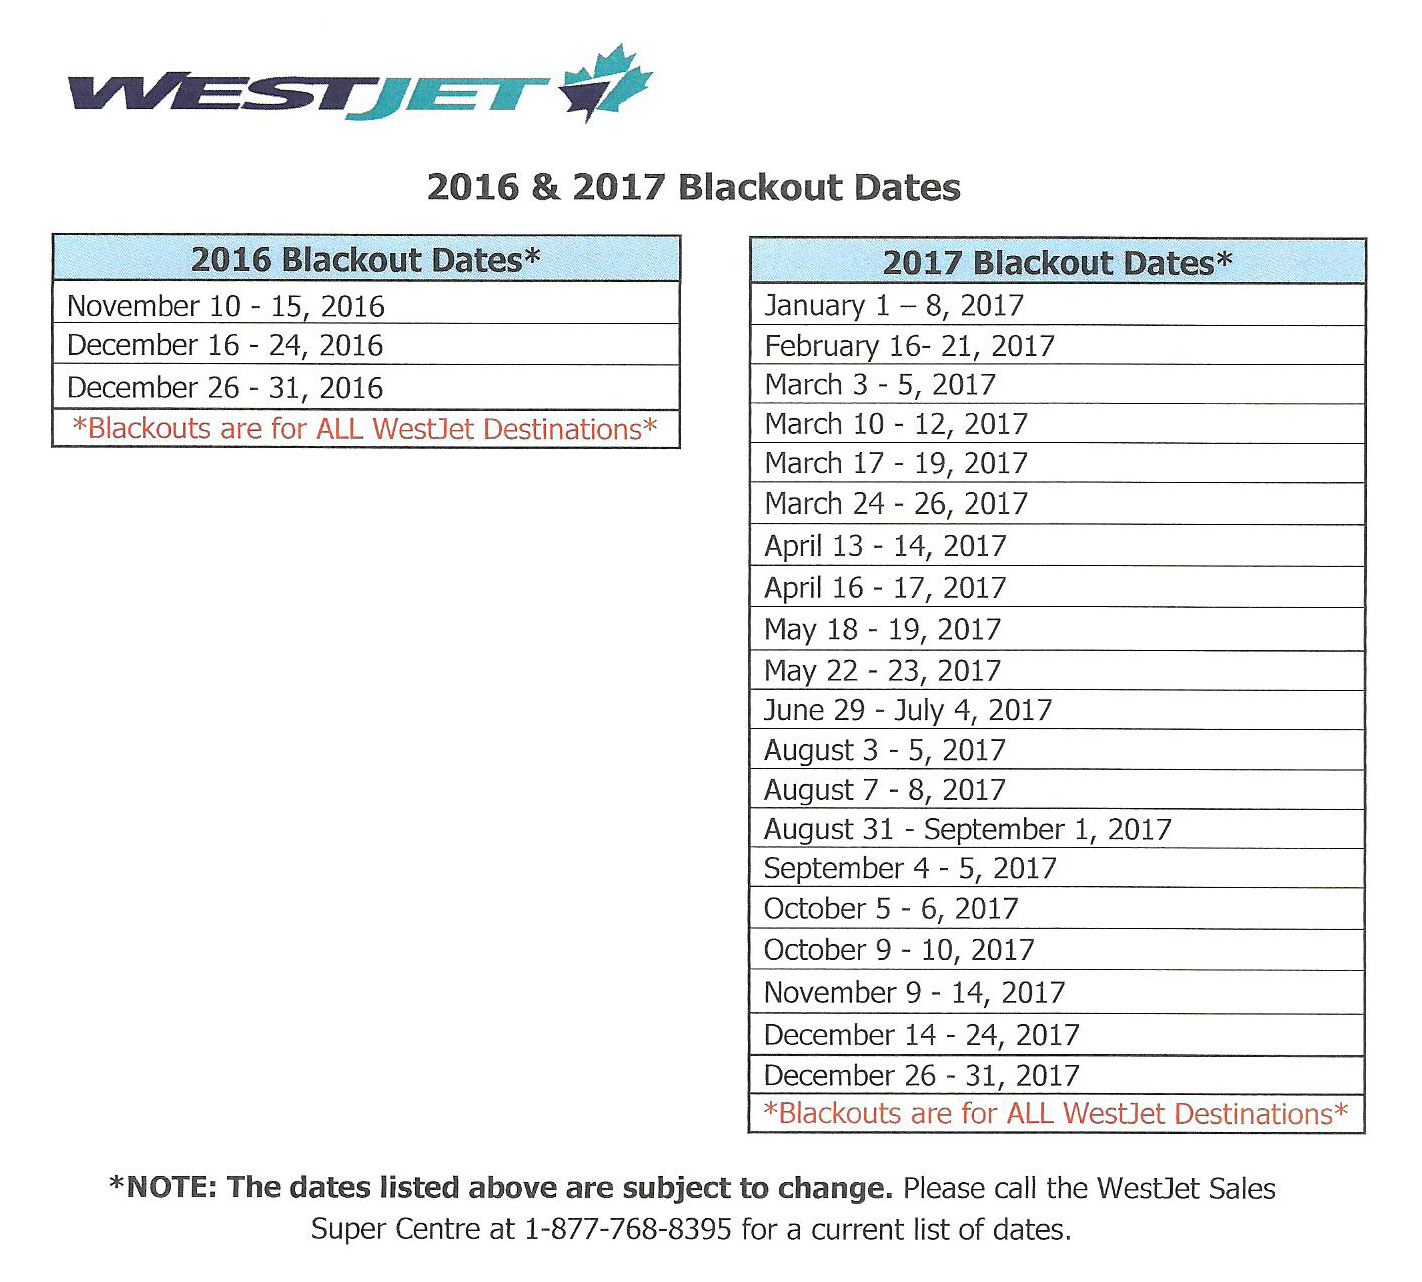 westjet_blackout_dates